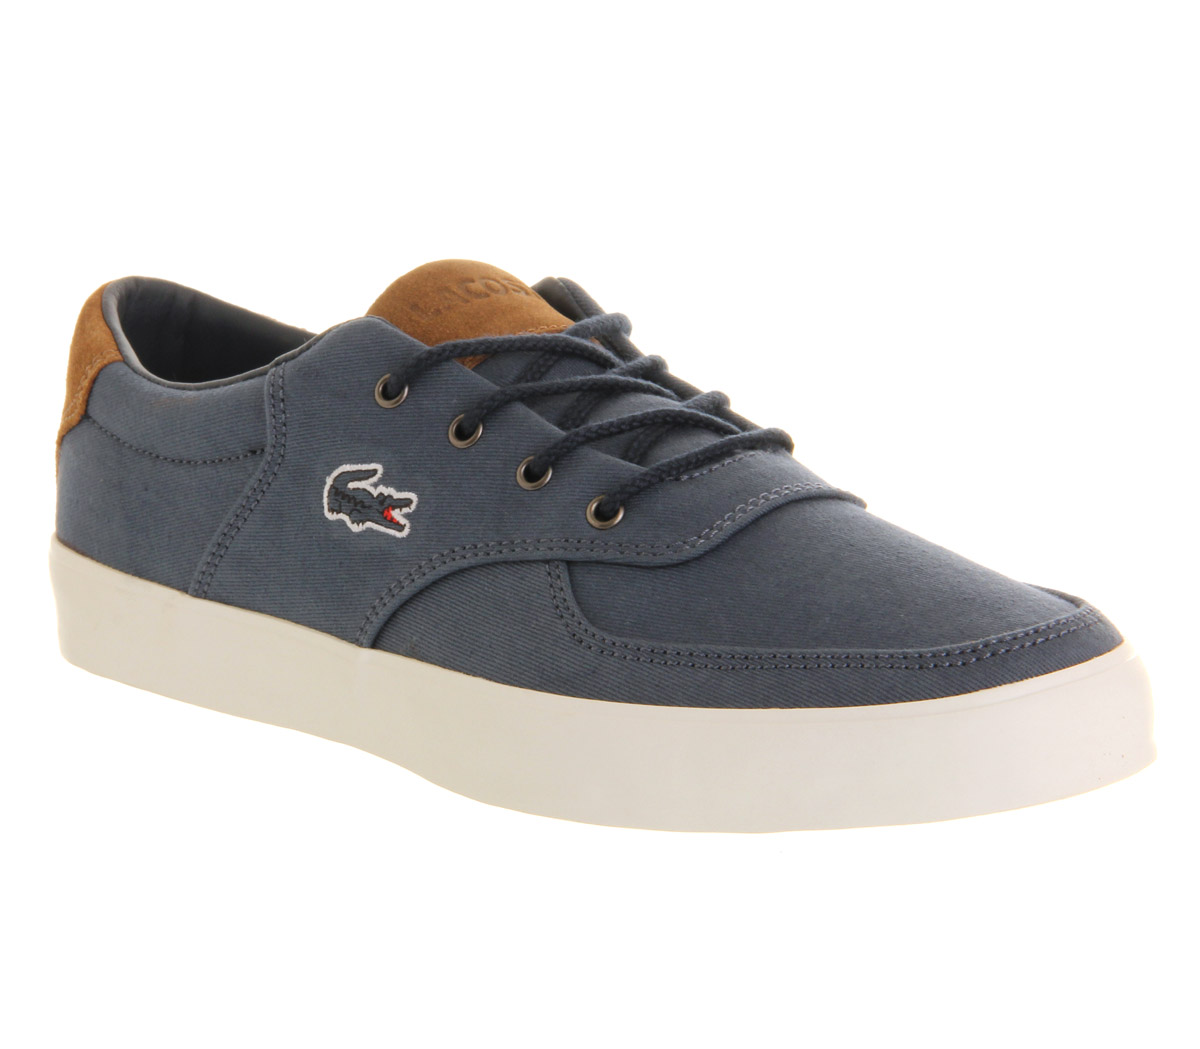 Mens-Lacoste-Glendon-Dark-Blue-Trainers-Shoes